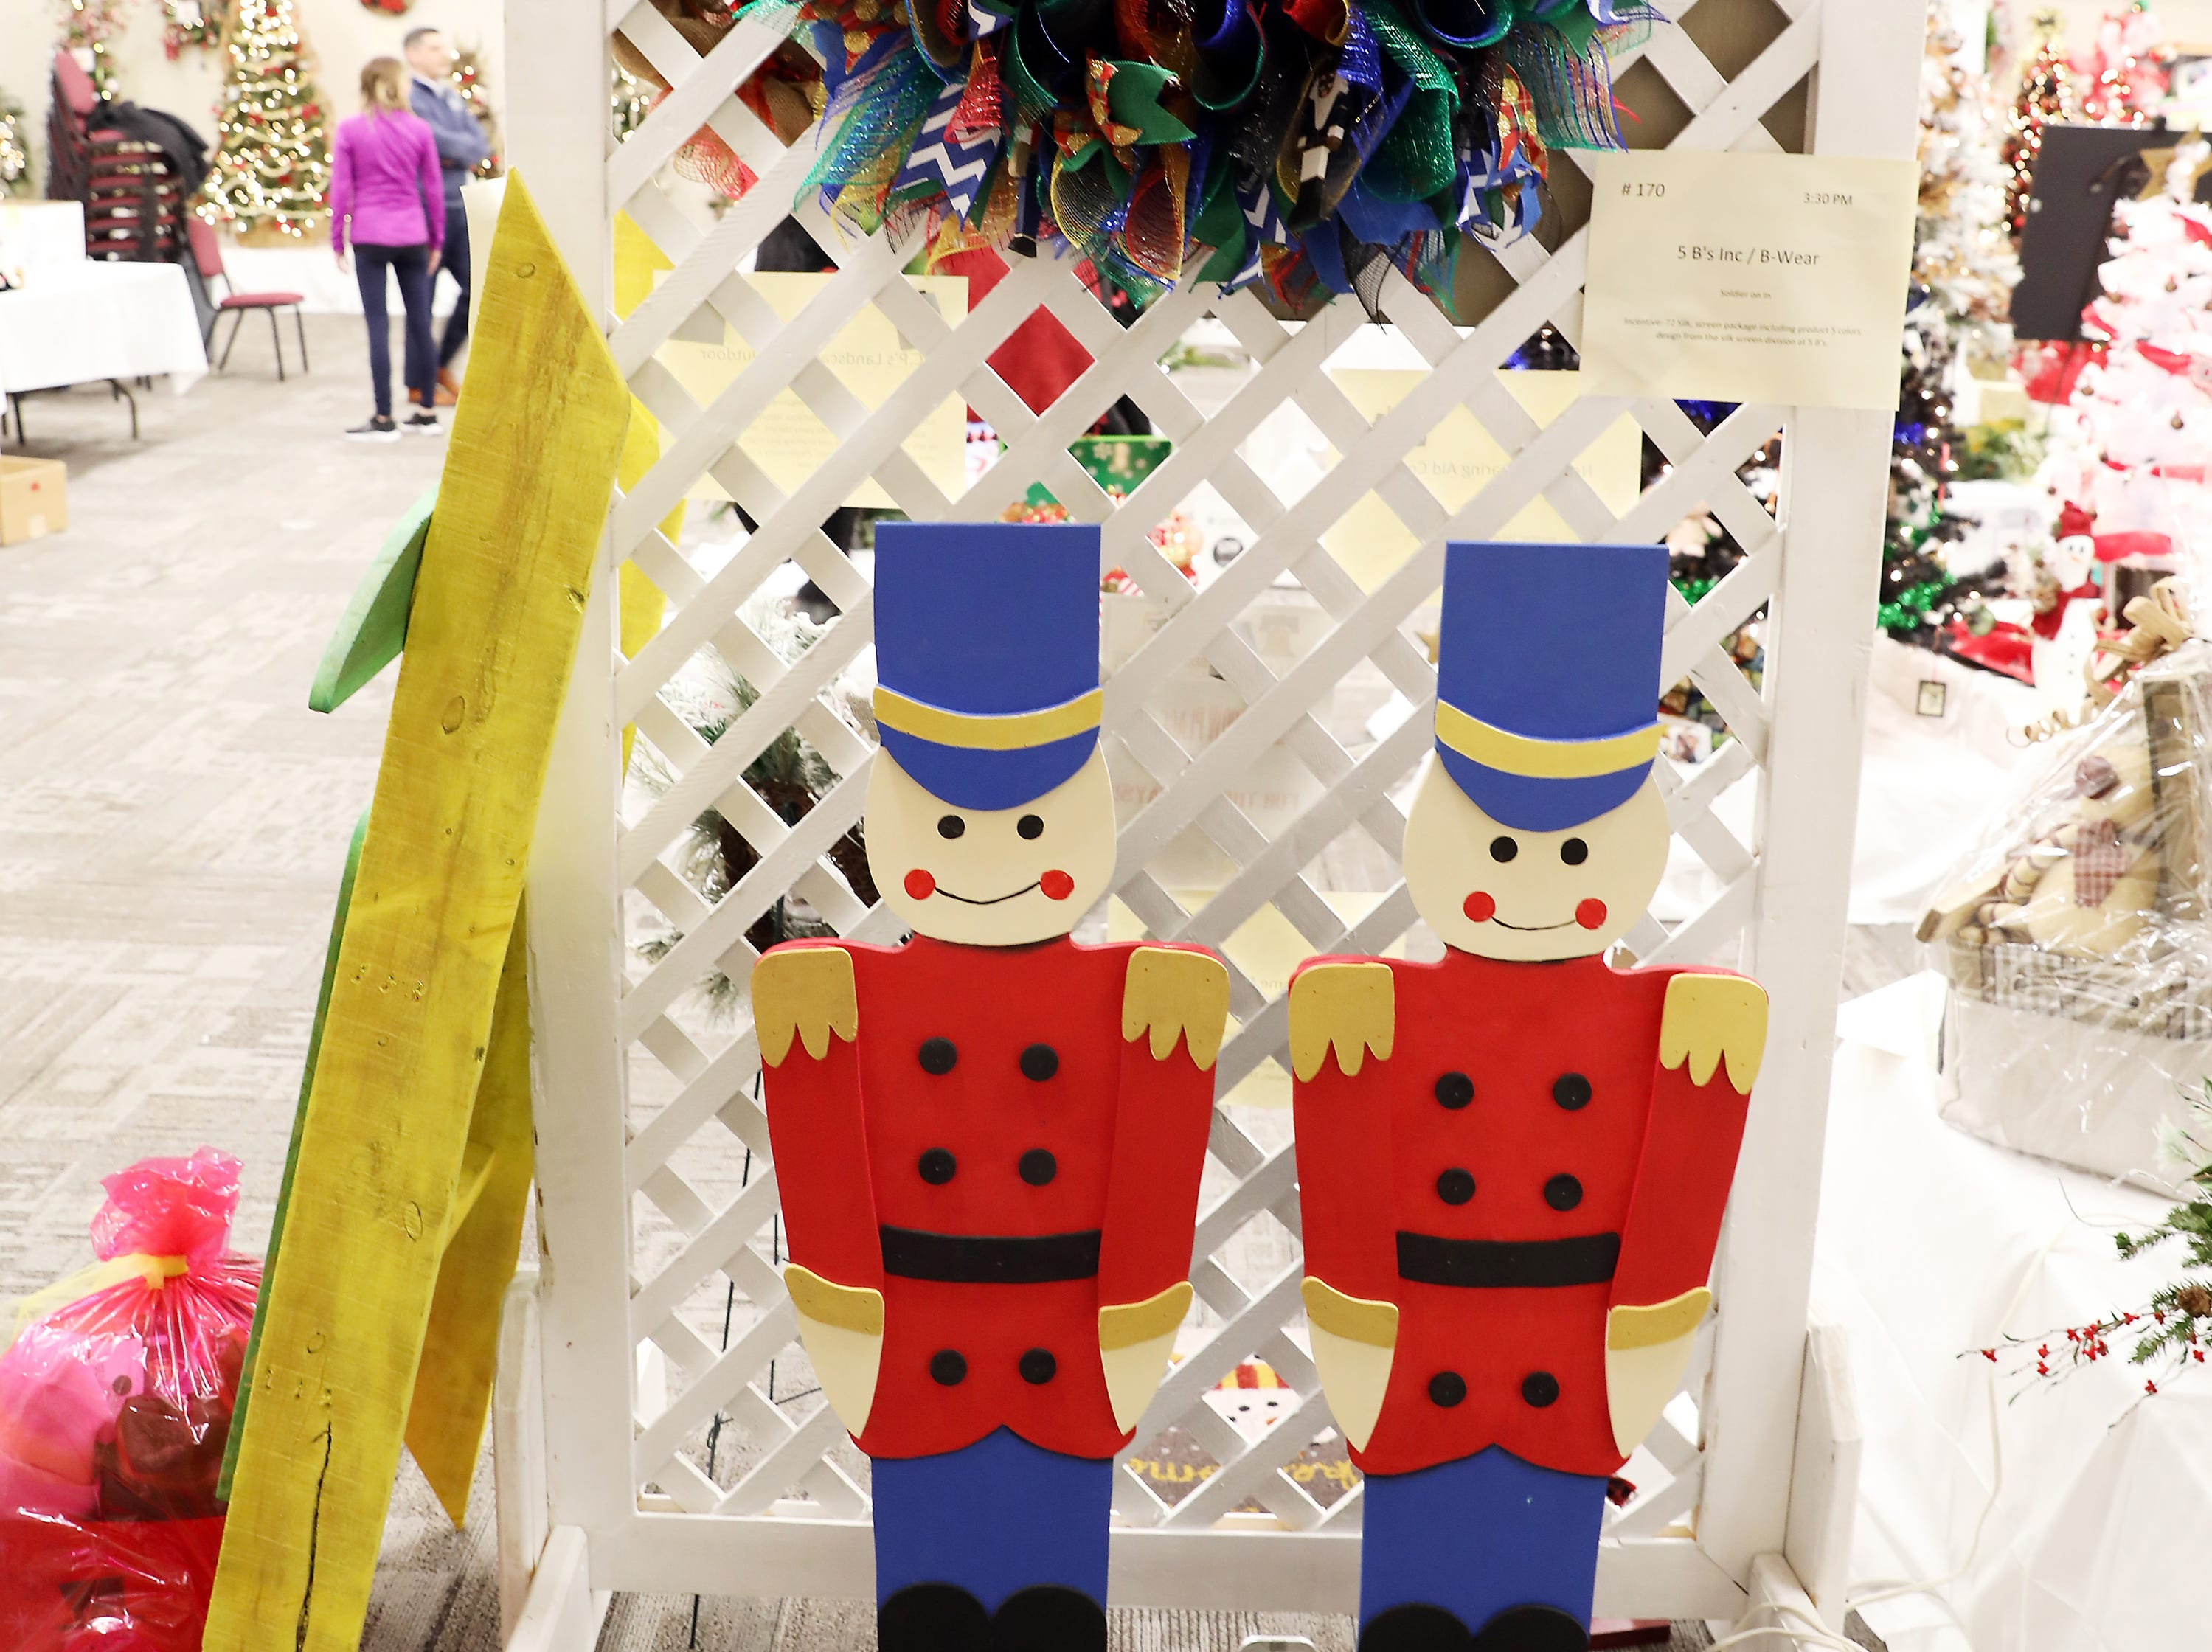 """1703:30 PM5 B's Inc / B-WearWreathSoldier on In28"""" multi color deco wreath with Merry Christmas Center.  Two 48"""" tall wooden toy soldiers painted bright blue, red and gold.  Black boot and hat with bright gold band.  Can be set by your door, fireplace etc.72 Silk, screen package including product 5 colors design from the silk screen division at 5 B's."""